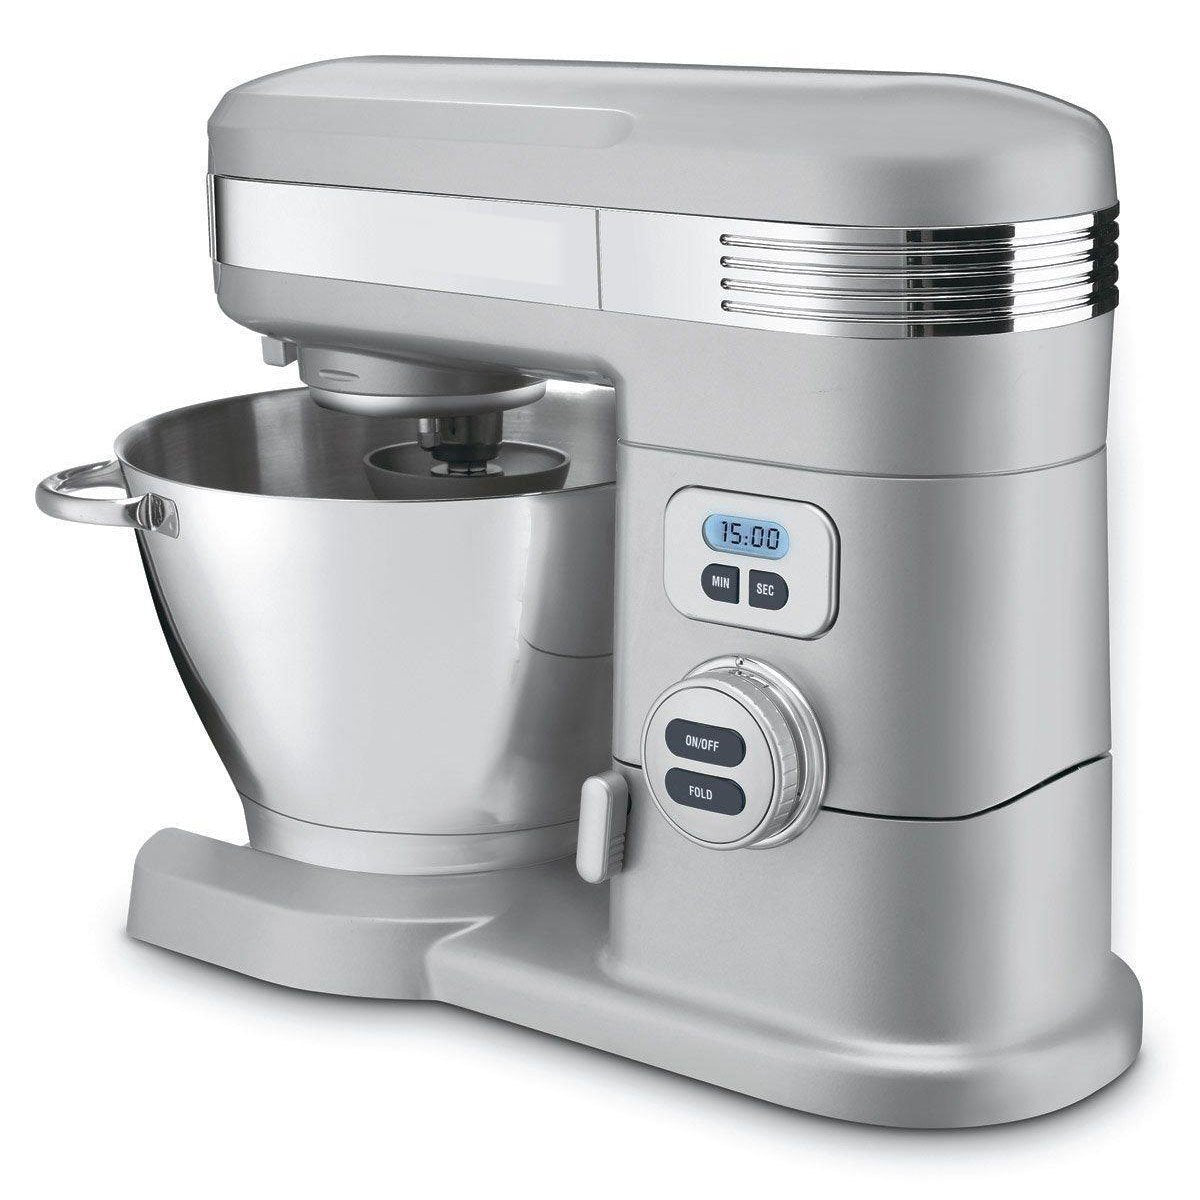 Durable Stainless-Steel Stand Mixer